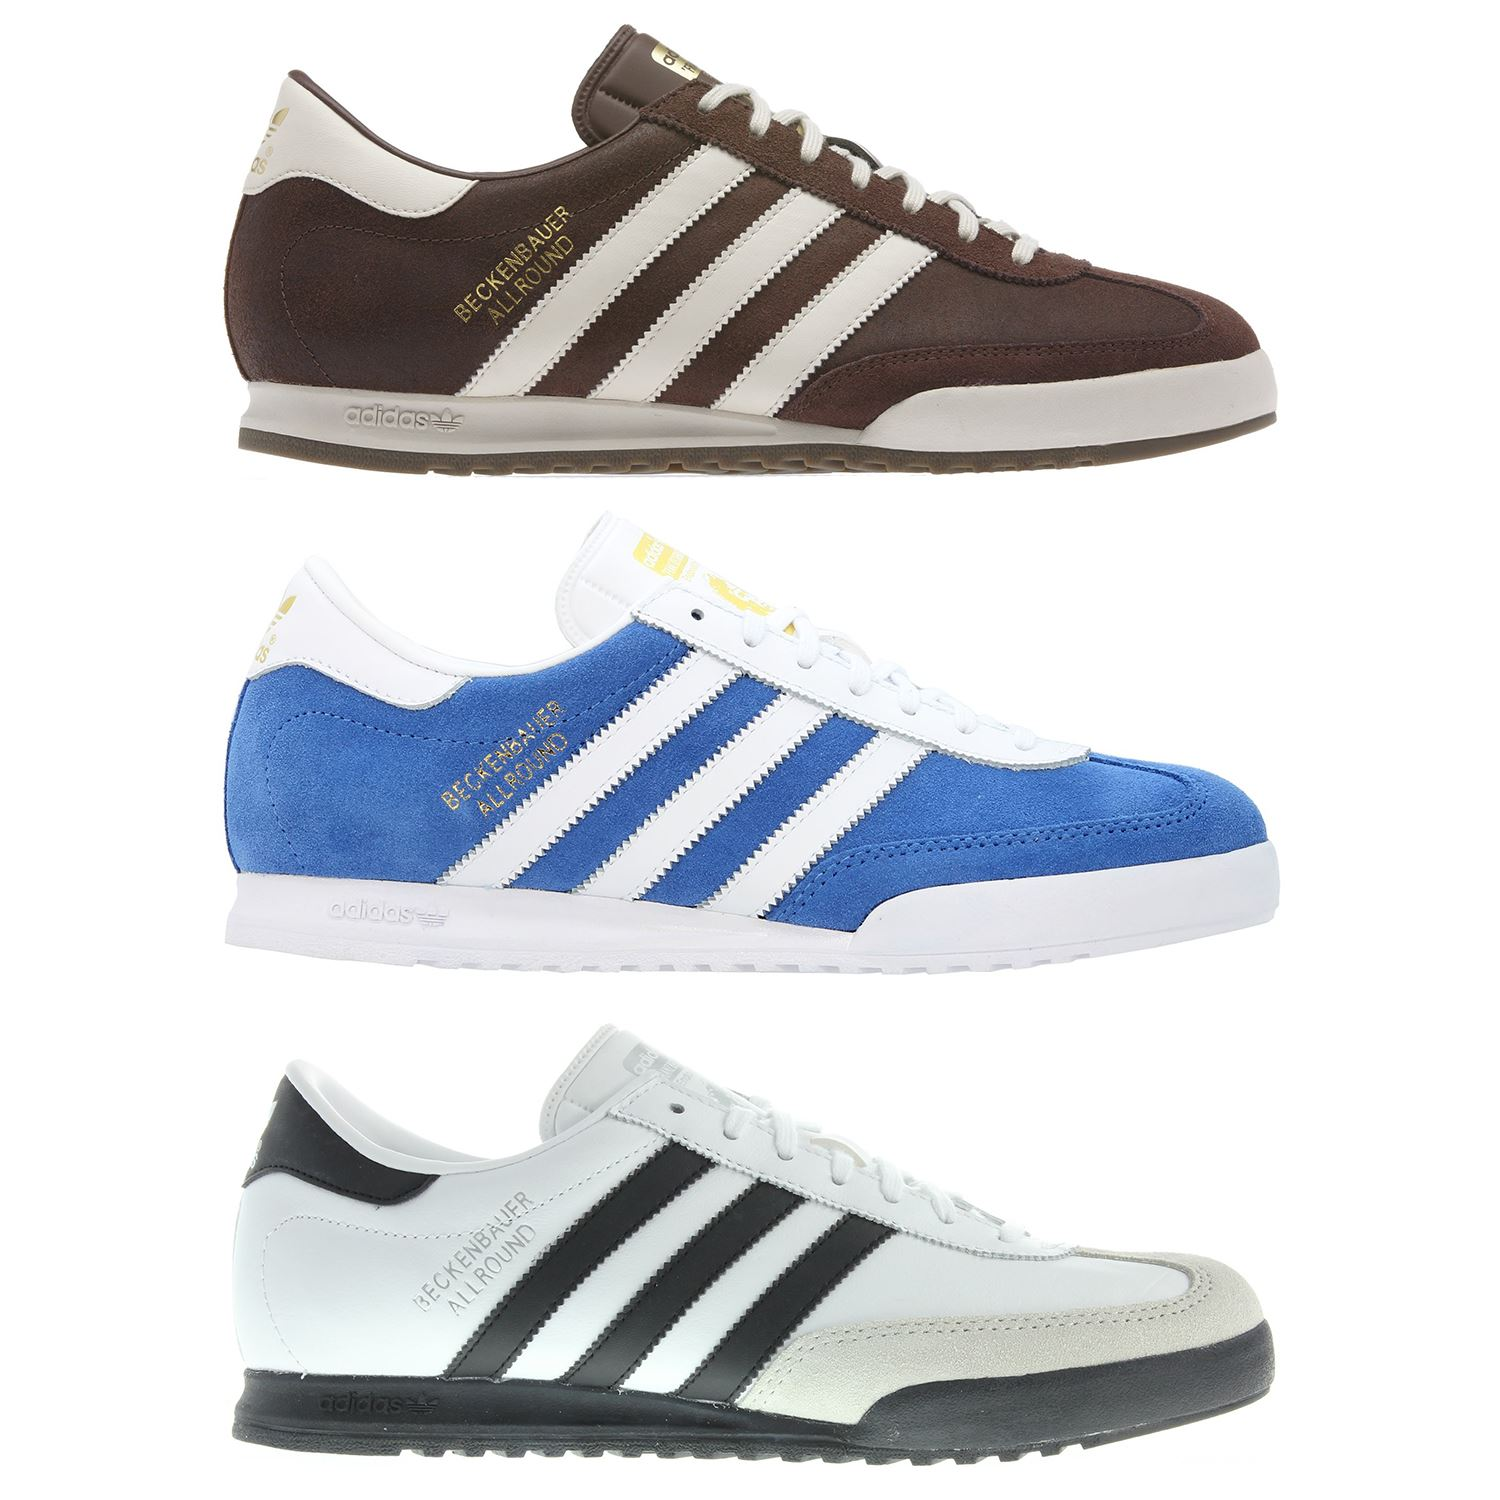 6bfe3787b339 ADIDAS ORIGINALS MEN S TRAINERS BECKENBAUER ALL ROUND BLUE WHITE ...